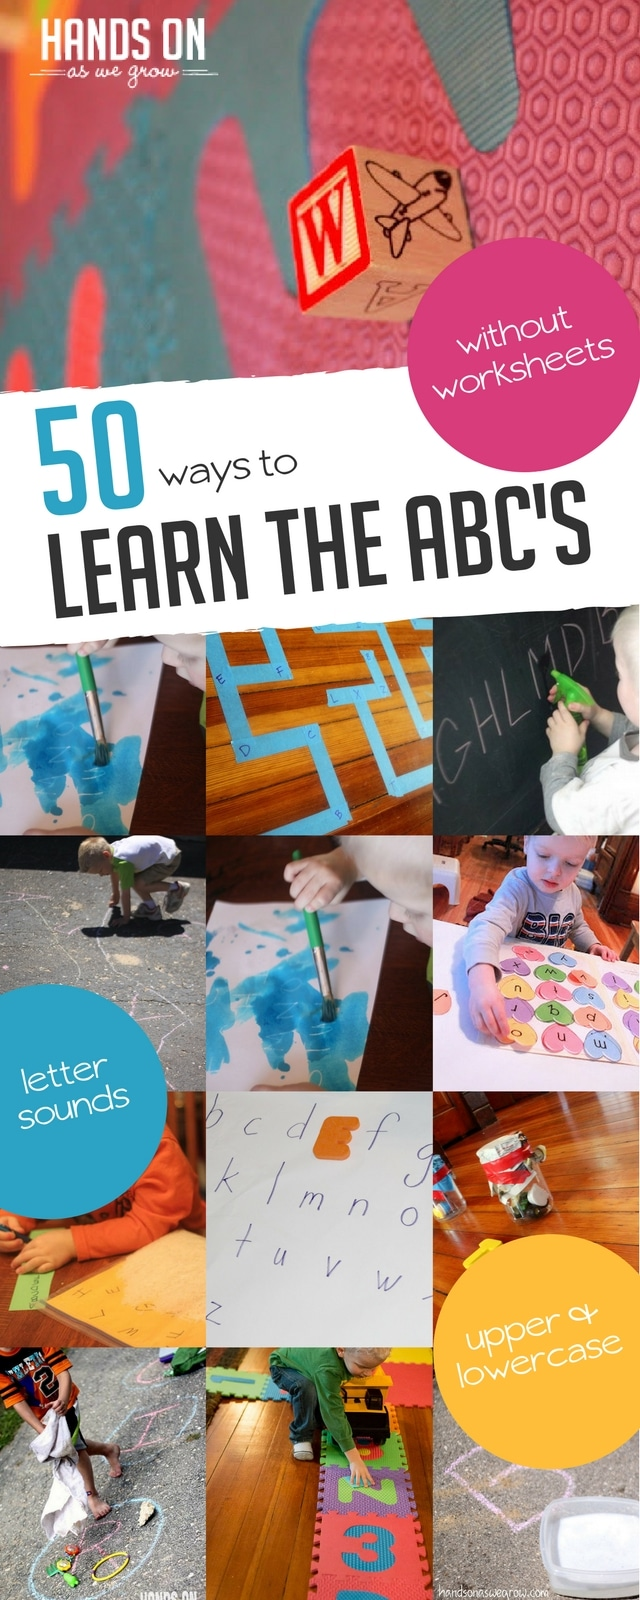 50 Alphabet Activities For Preschoolers To Learn Letter Sounds Upper And Lowercase Letters Recognizing